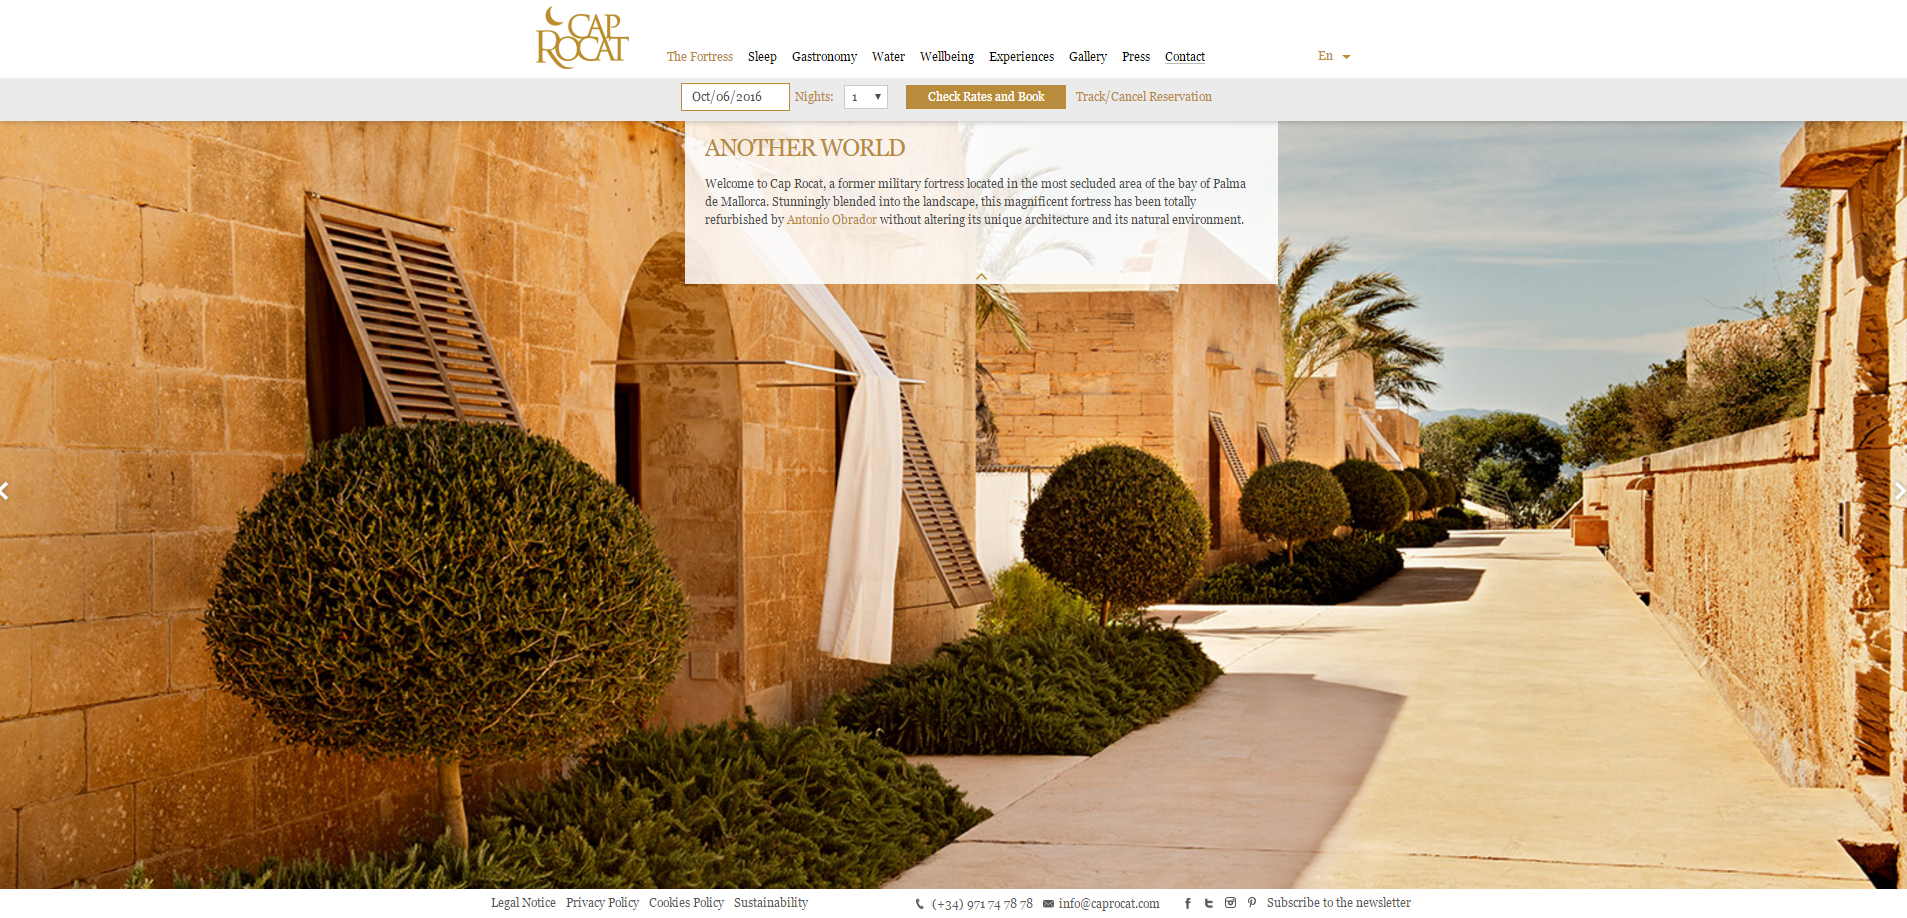 Cap Rocat hotel website homepage